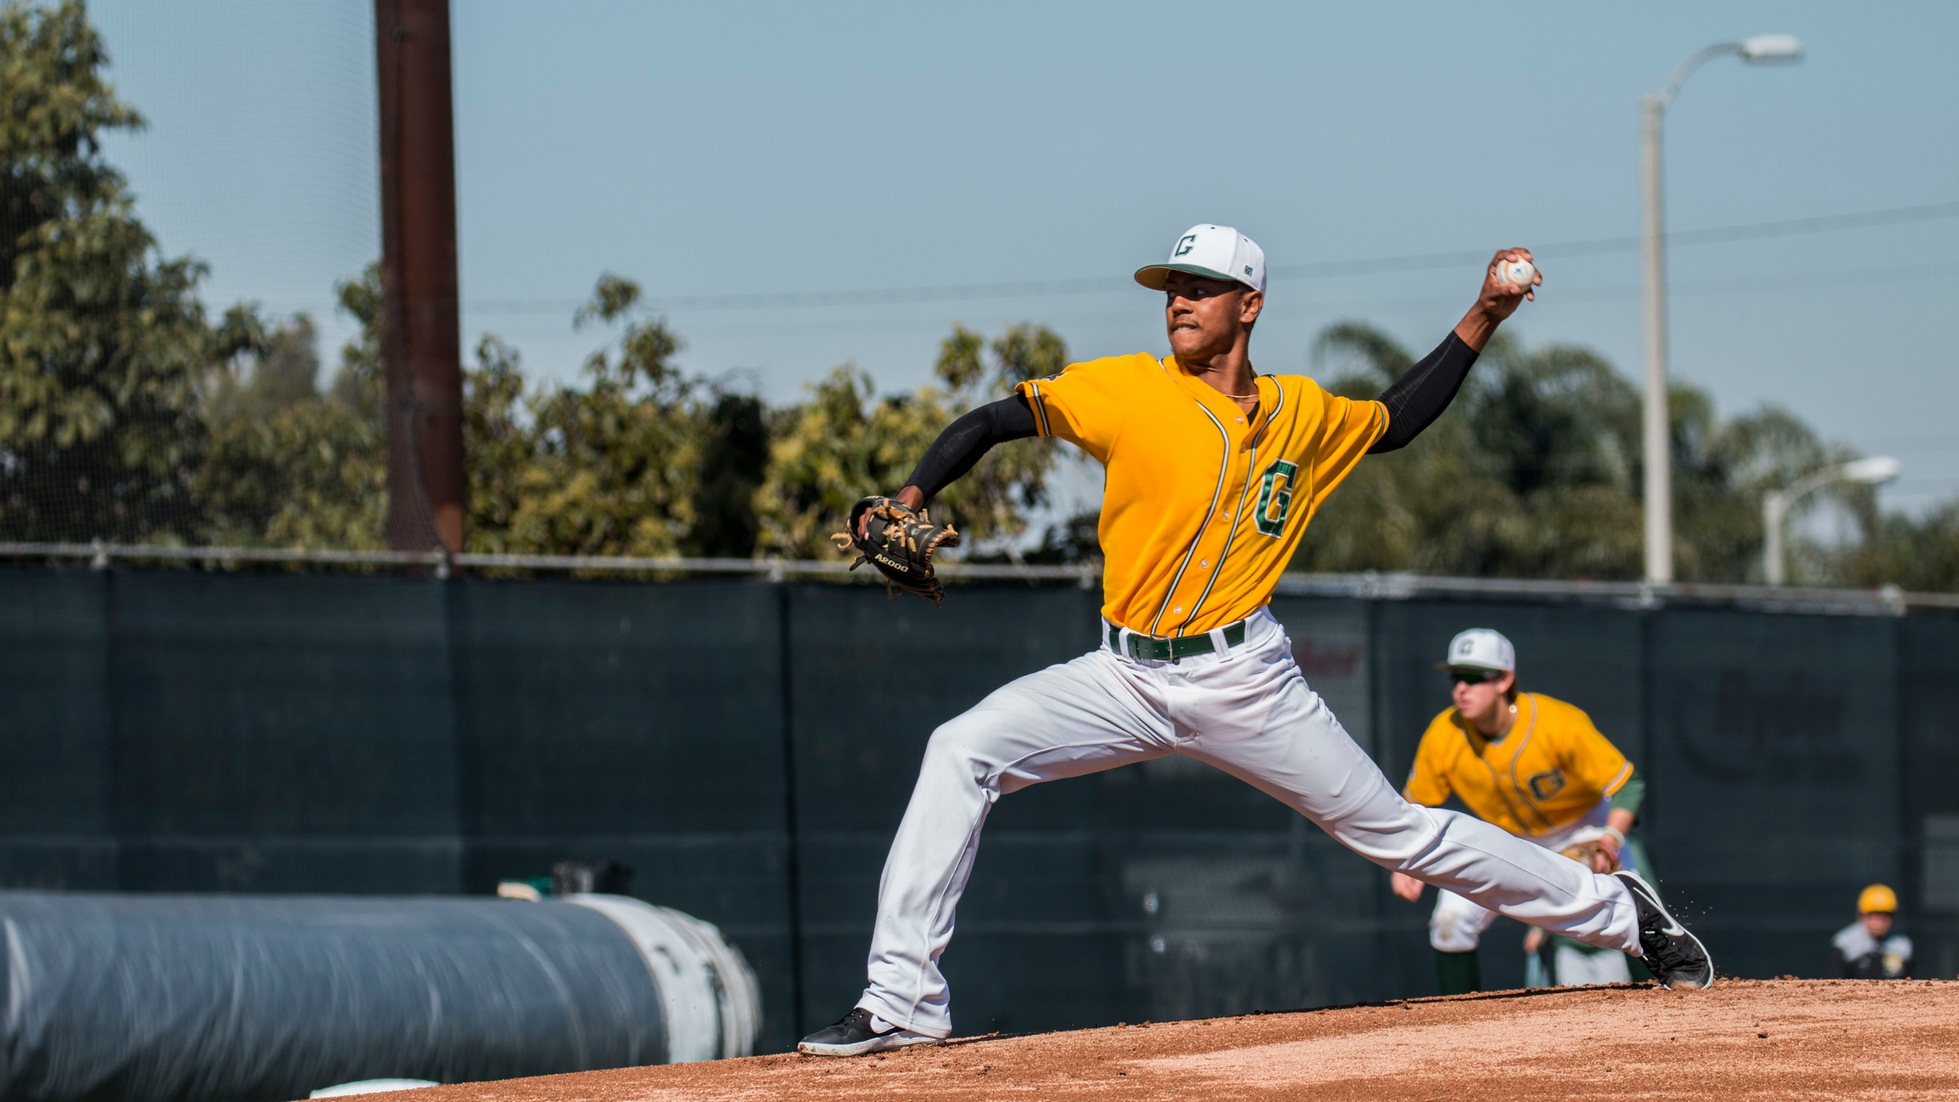 Baseball: Offense Struggles to Score in Doubleheader Sweep